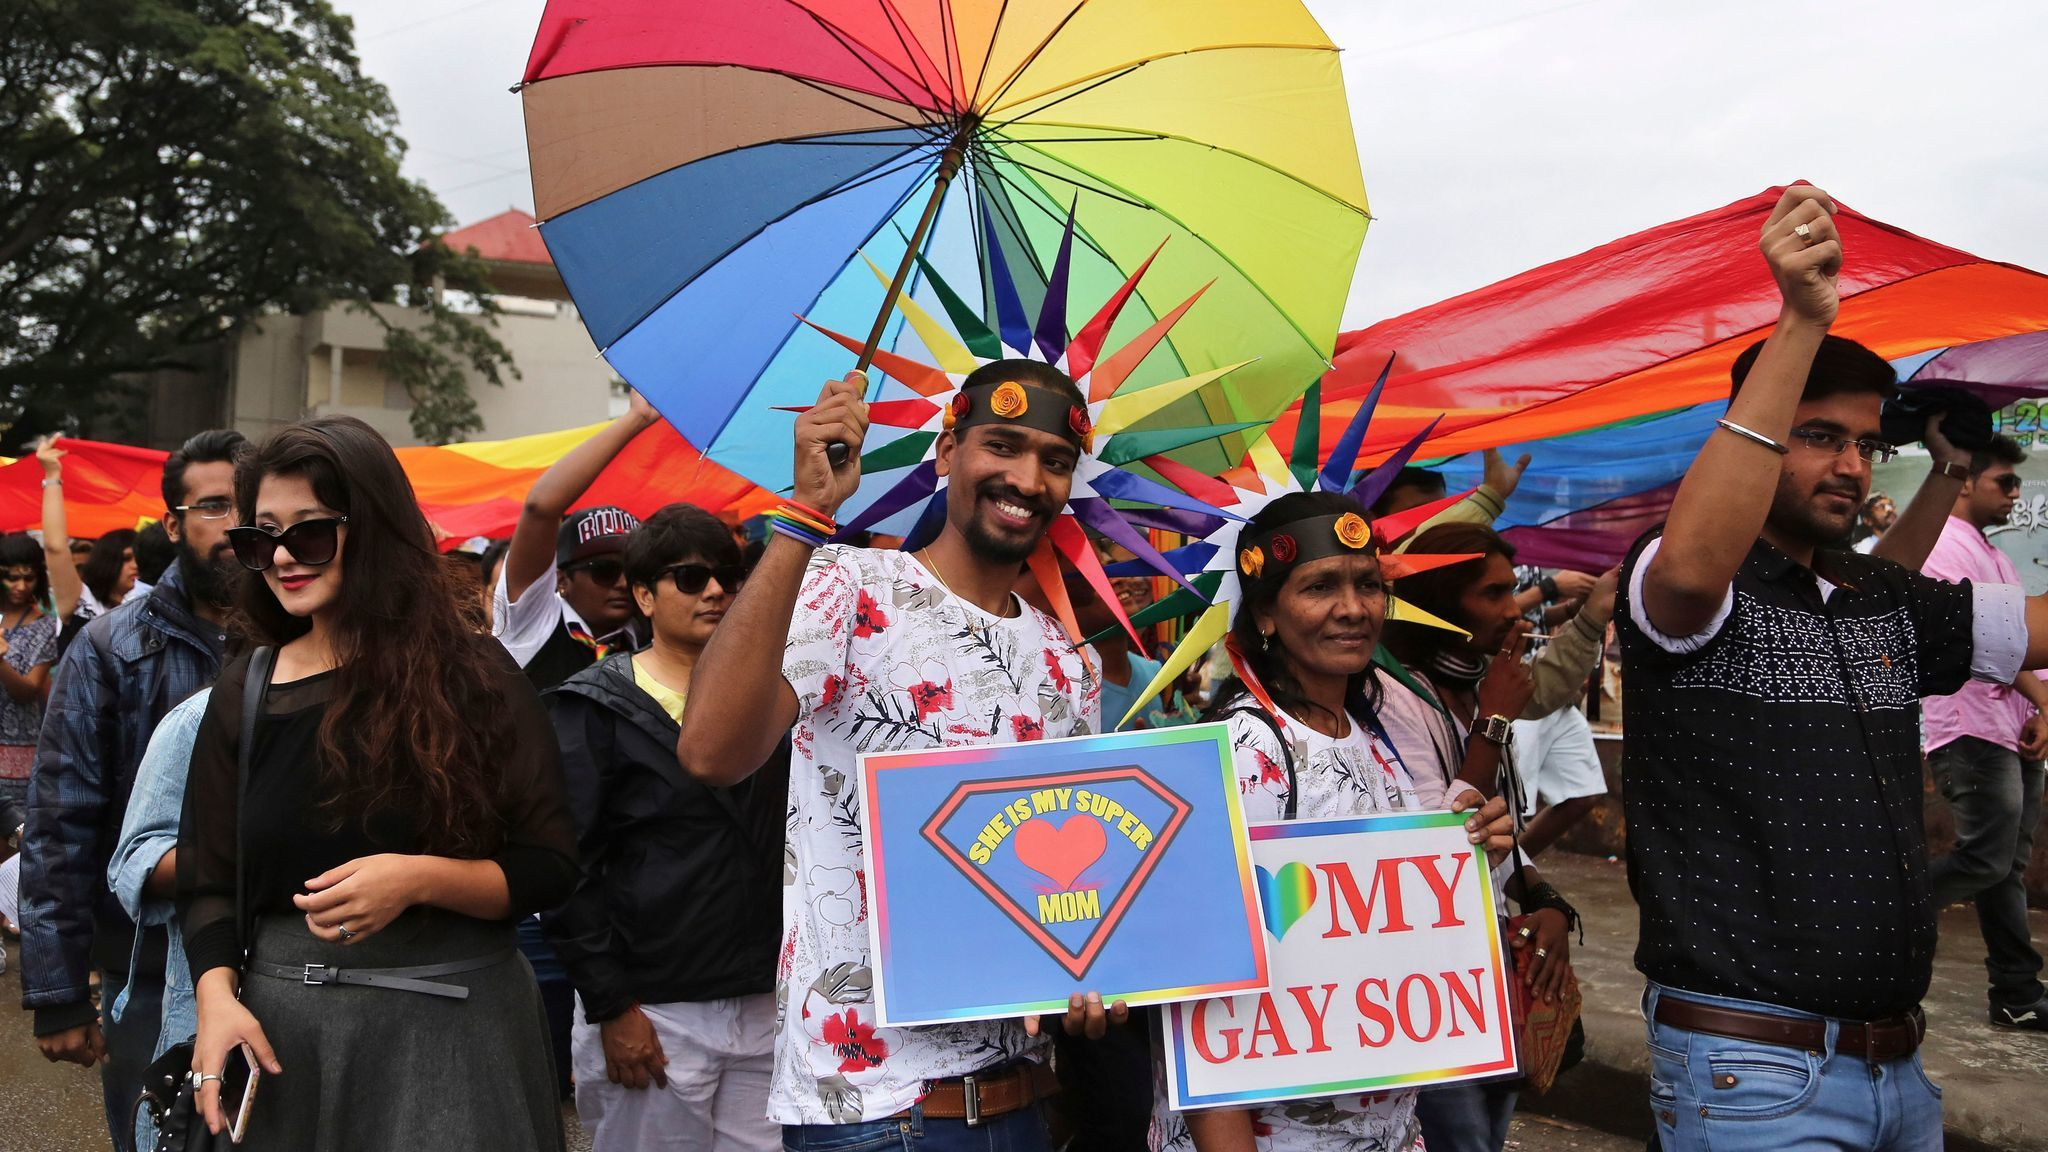 Members and supporters of the LGBTQ community participate in a Pride March in Bangalore, India.